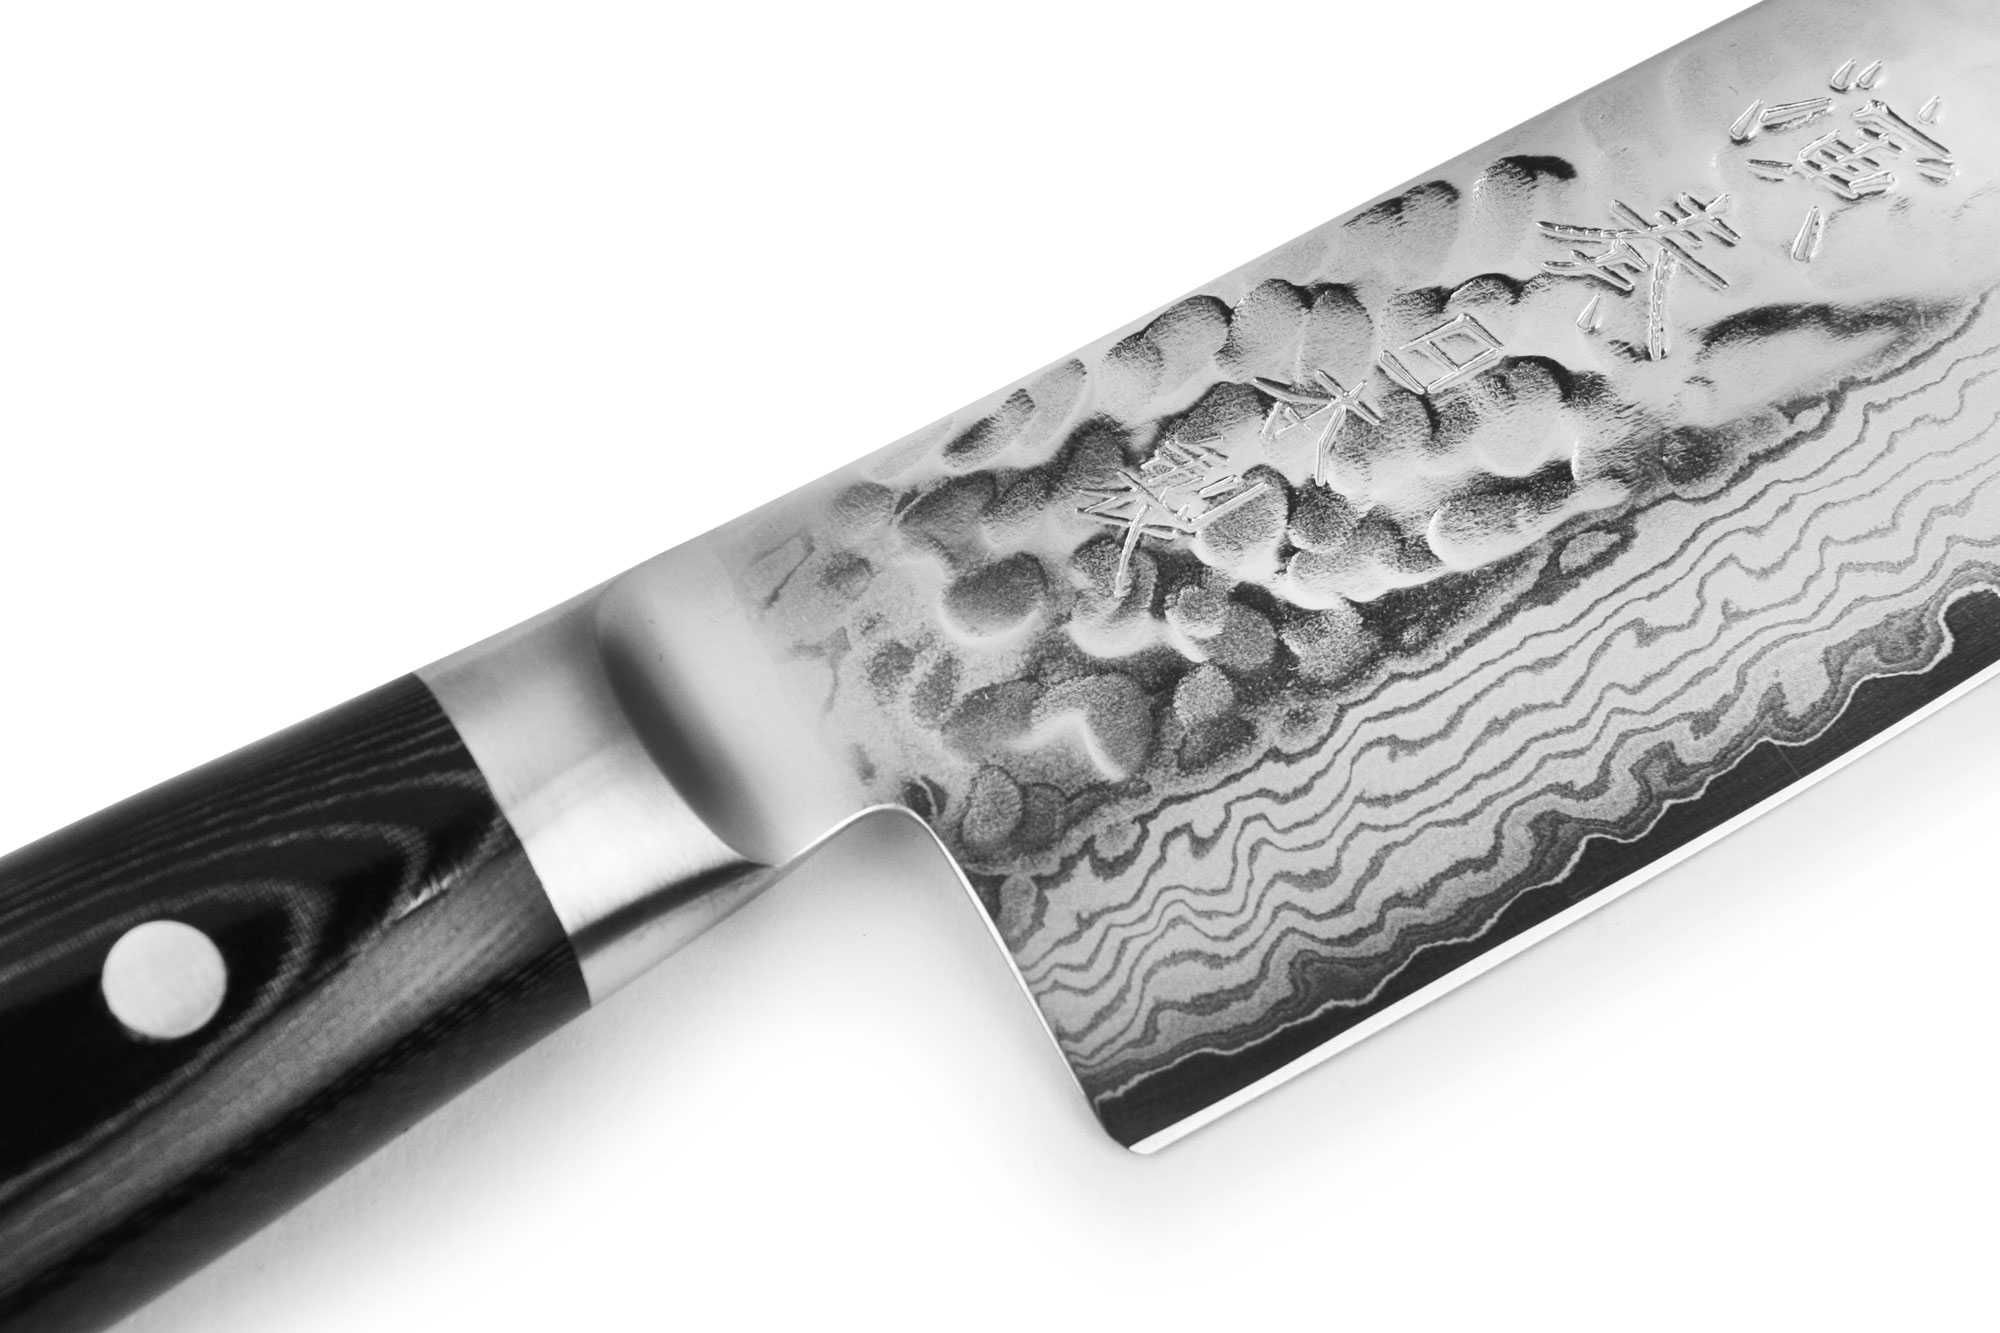 asian knife set famous chef